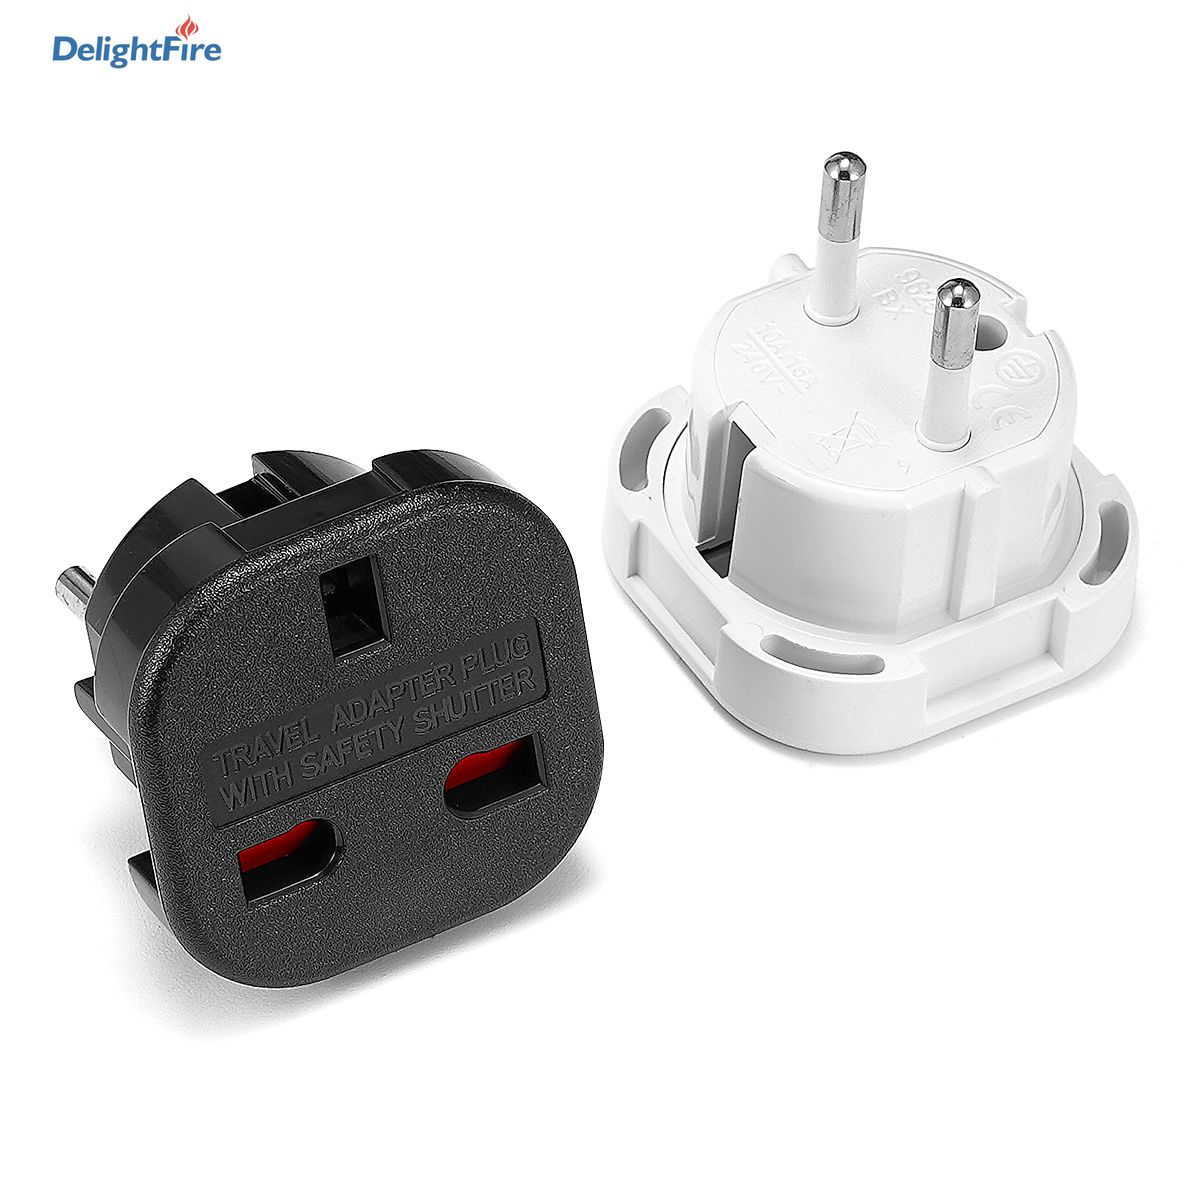 travel eu plug converter adapter 250v ac travel charger wall power plug socket with home adapter EU Plug Adapter Socket 4.0mm UK To EU Travel Adapter 2 pin Black/White Electrical Plug Converter UK Power Cable Charger Socket